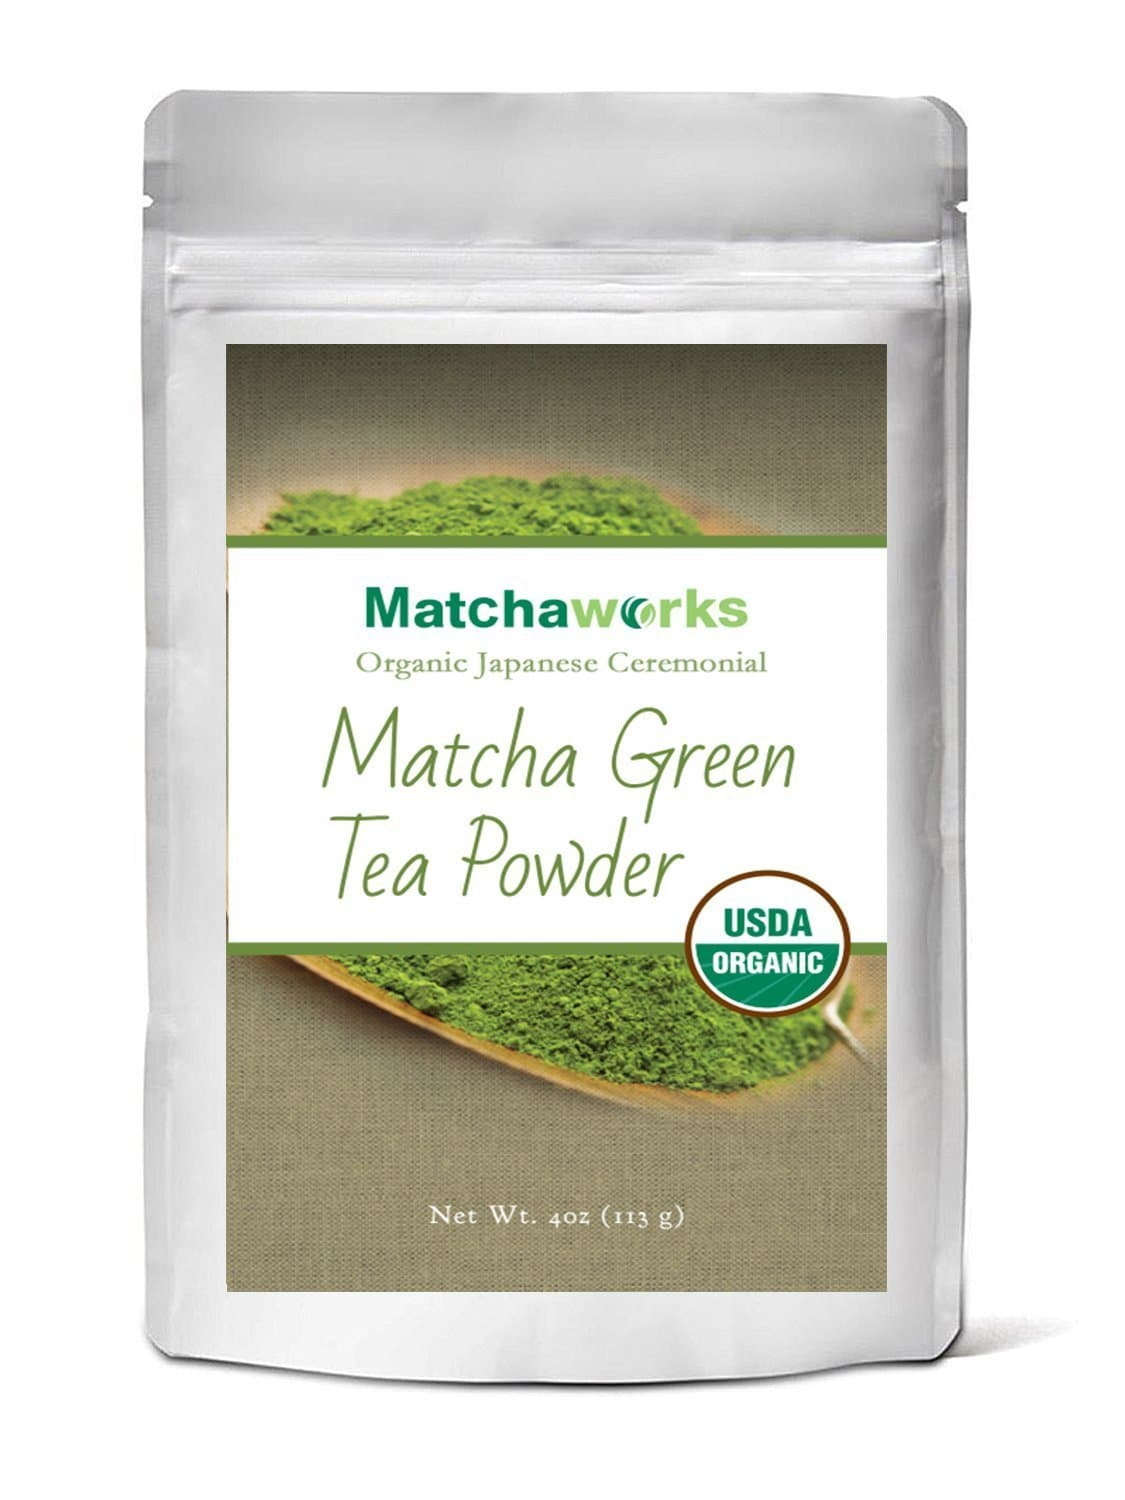 Matchaworks Matcha Green Tea Powder Organic, Japanese Ceremonial Grade, 4oz - Healthworks Superfood Organic